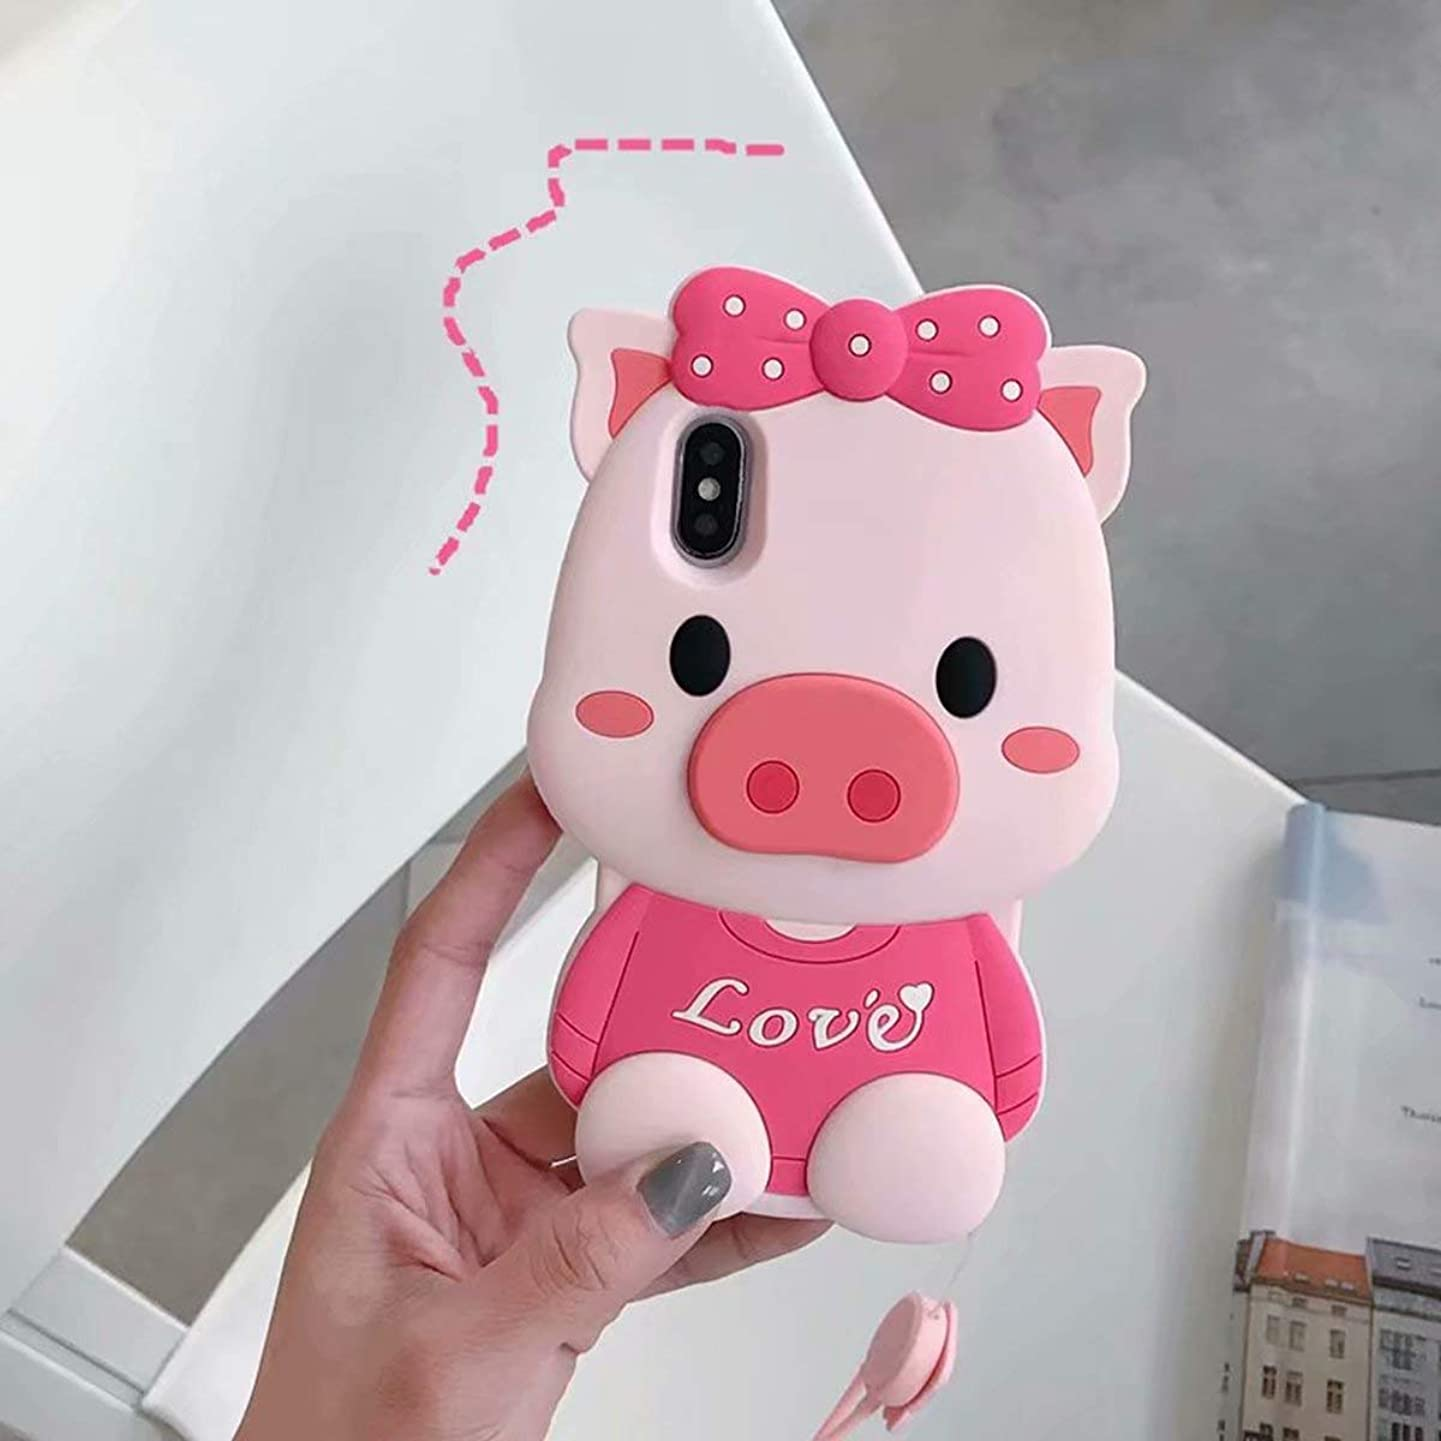 Pink Pig Case for iPhone 7 Plus/ 8 Plus,Anya 3D Cartoon Animal Cute Soft Silicone Rubber Character Design Piglet Cover,Animated Kawaii Fashion Cool Protective Skin Shell for Kids Child Teens Girls